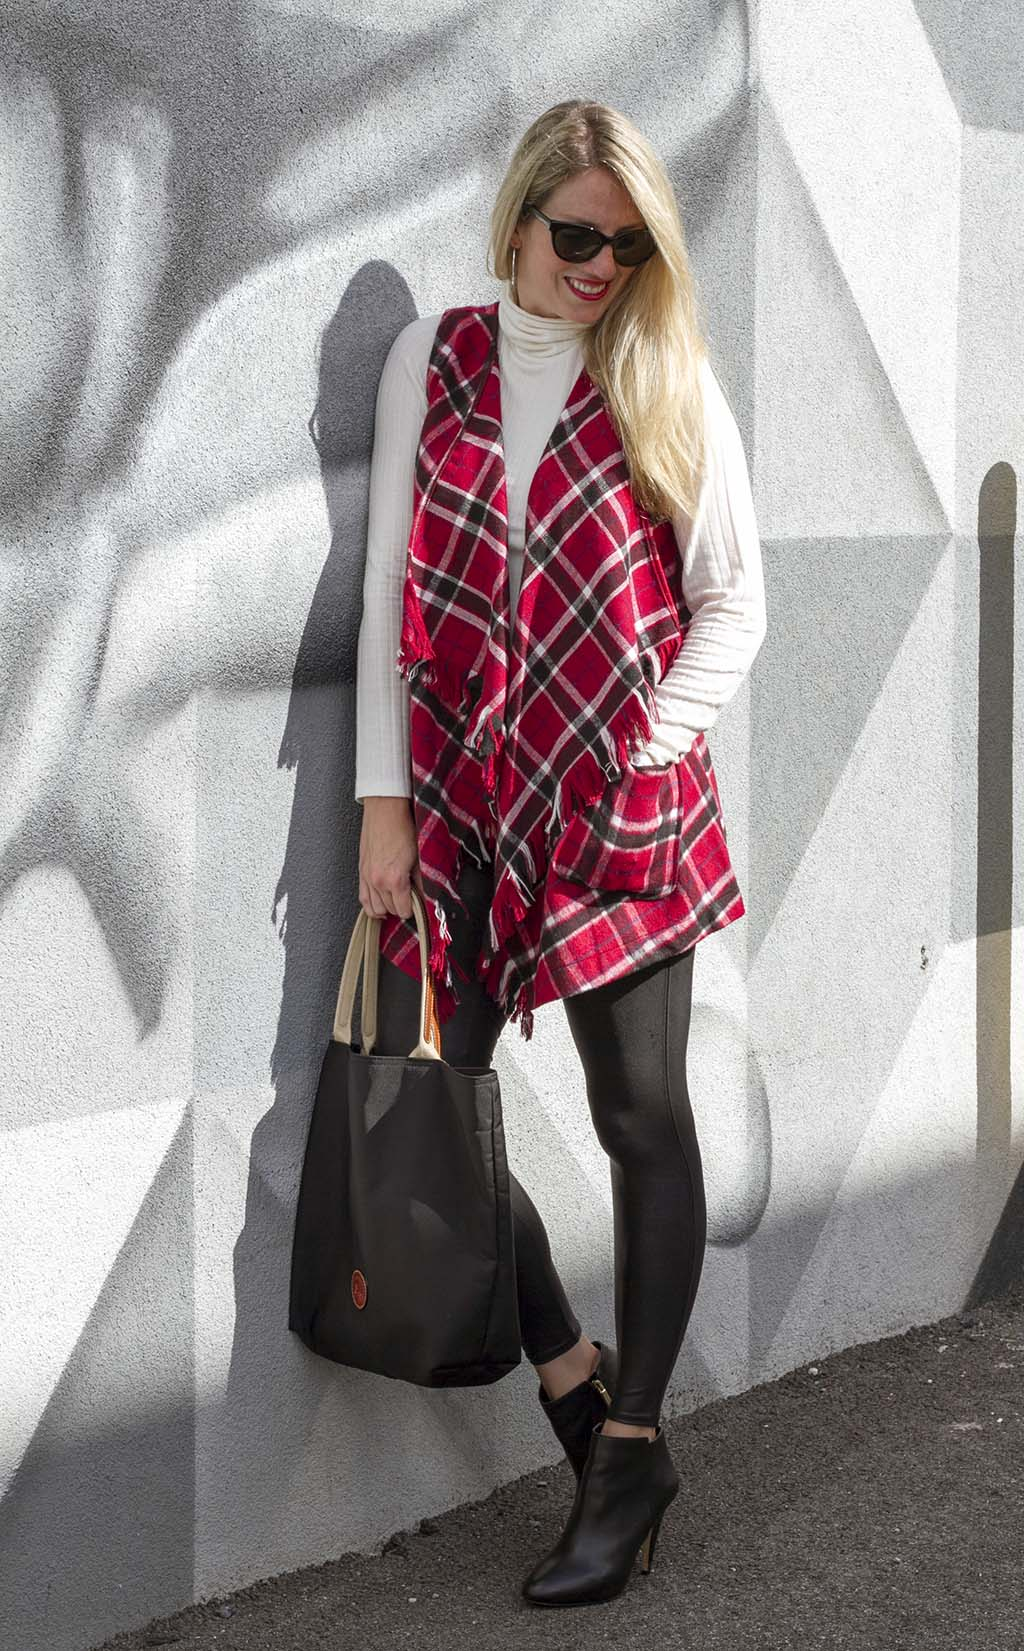 Leaning in a Fringed Plaid Vest